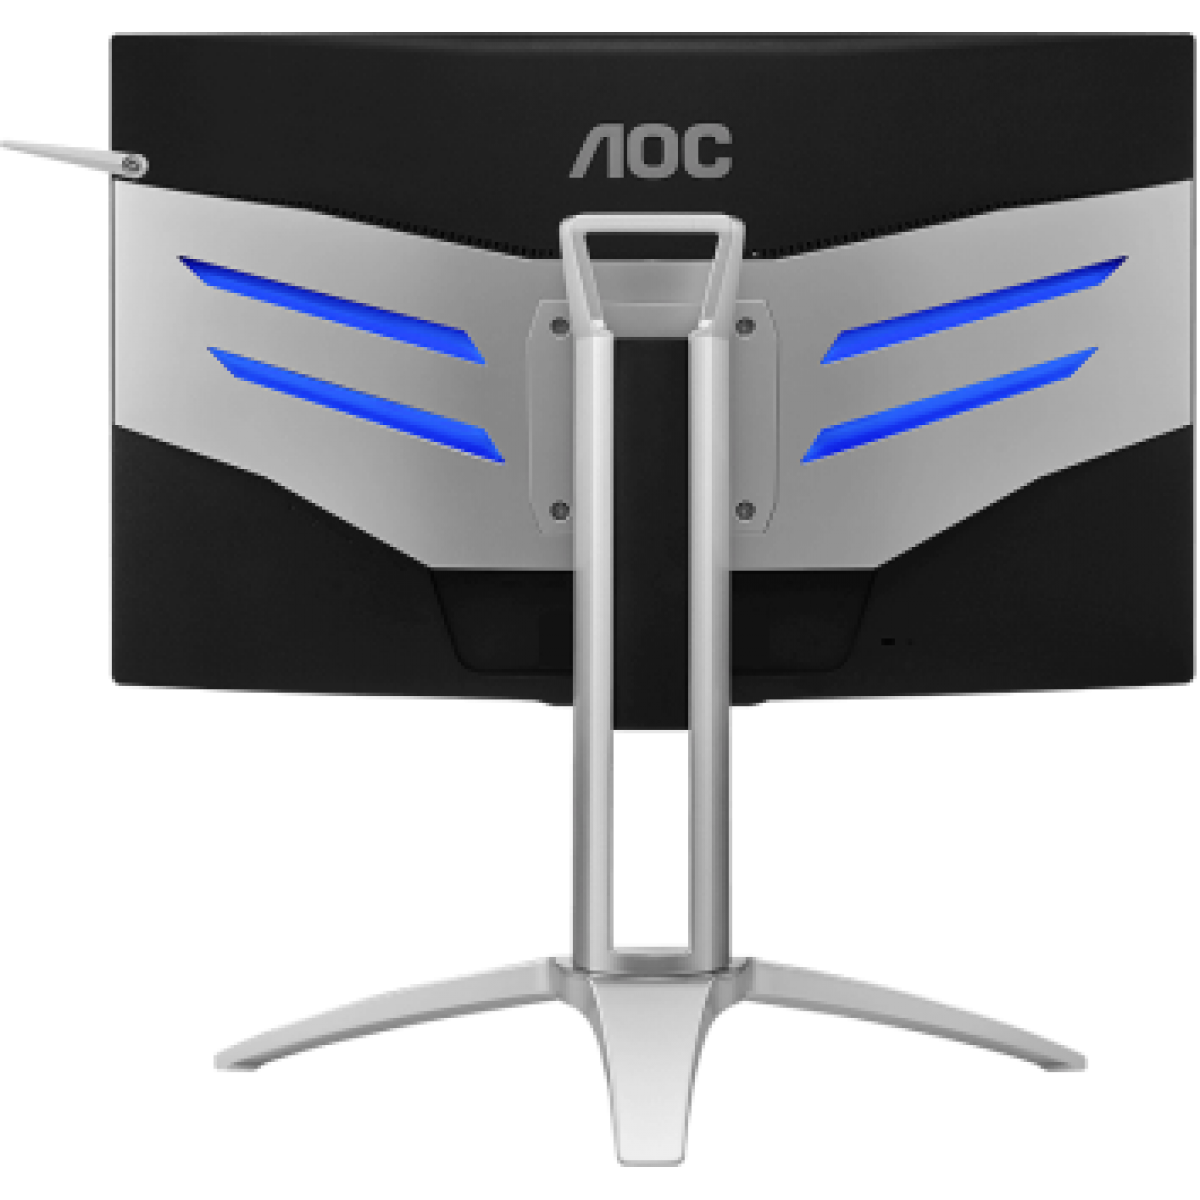 Monitor Gamer AOC Agon 27 Pol Curvo, Full HD, 144Hz, 4ms, AMD Freesync, AG272FCX